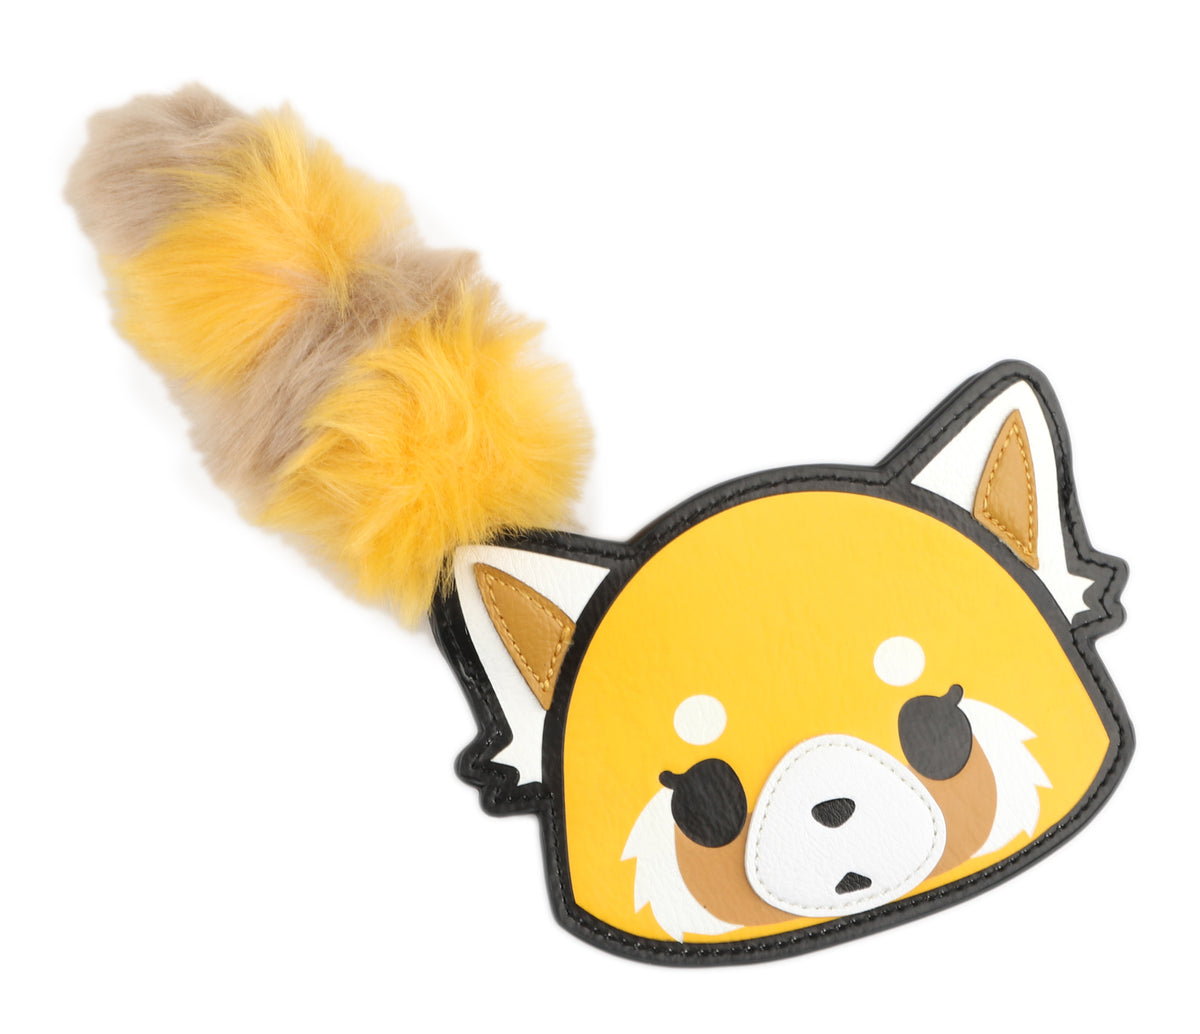 Aggretsuko Coin Purse: Two Sides